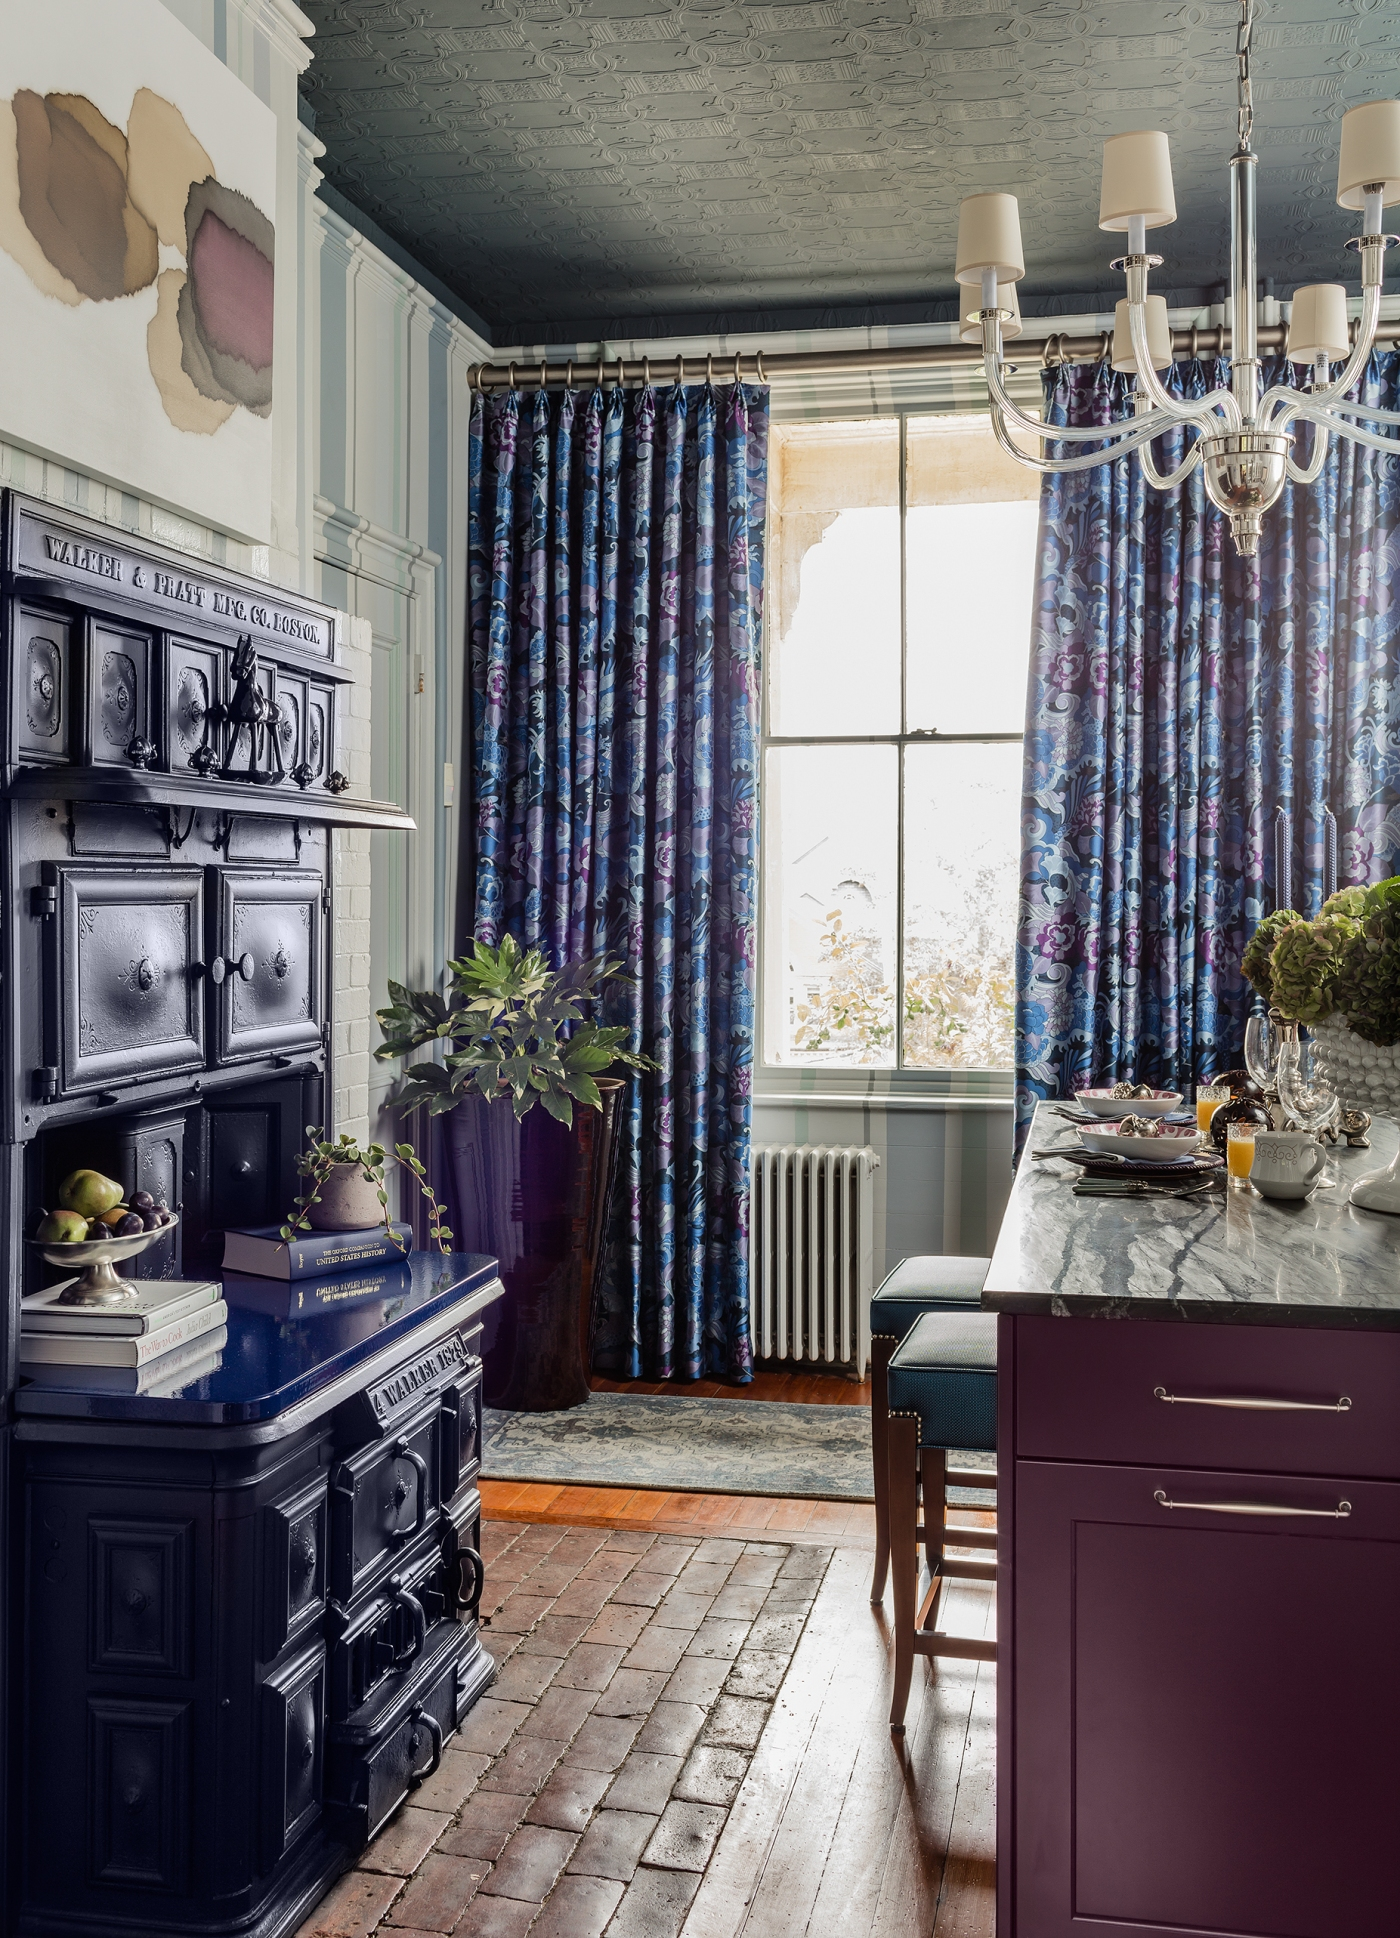 Appliances and Adornment for The Morning Kitchen | Interiors for Families | Kelly Rogers Interiors